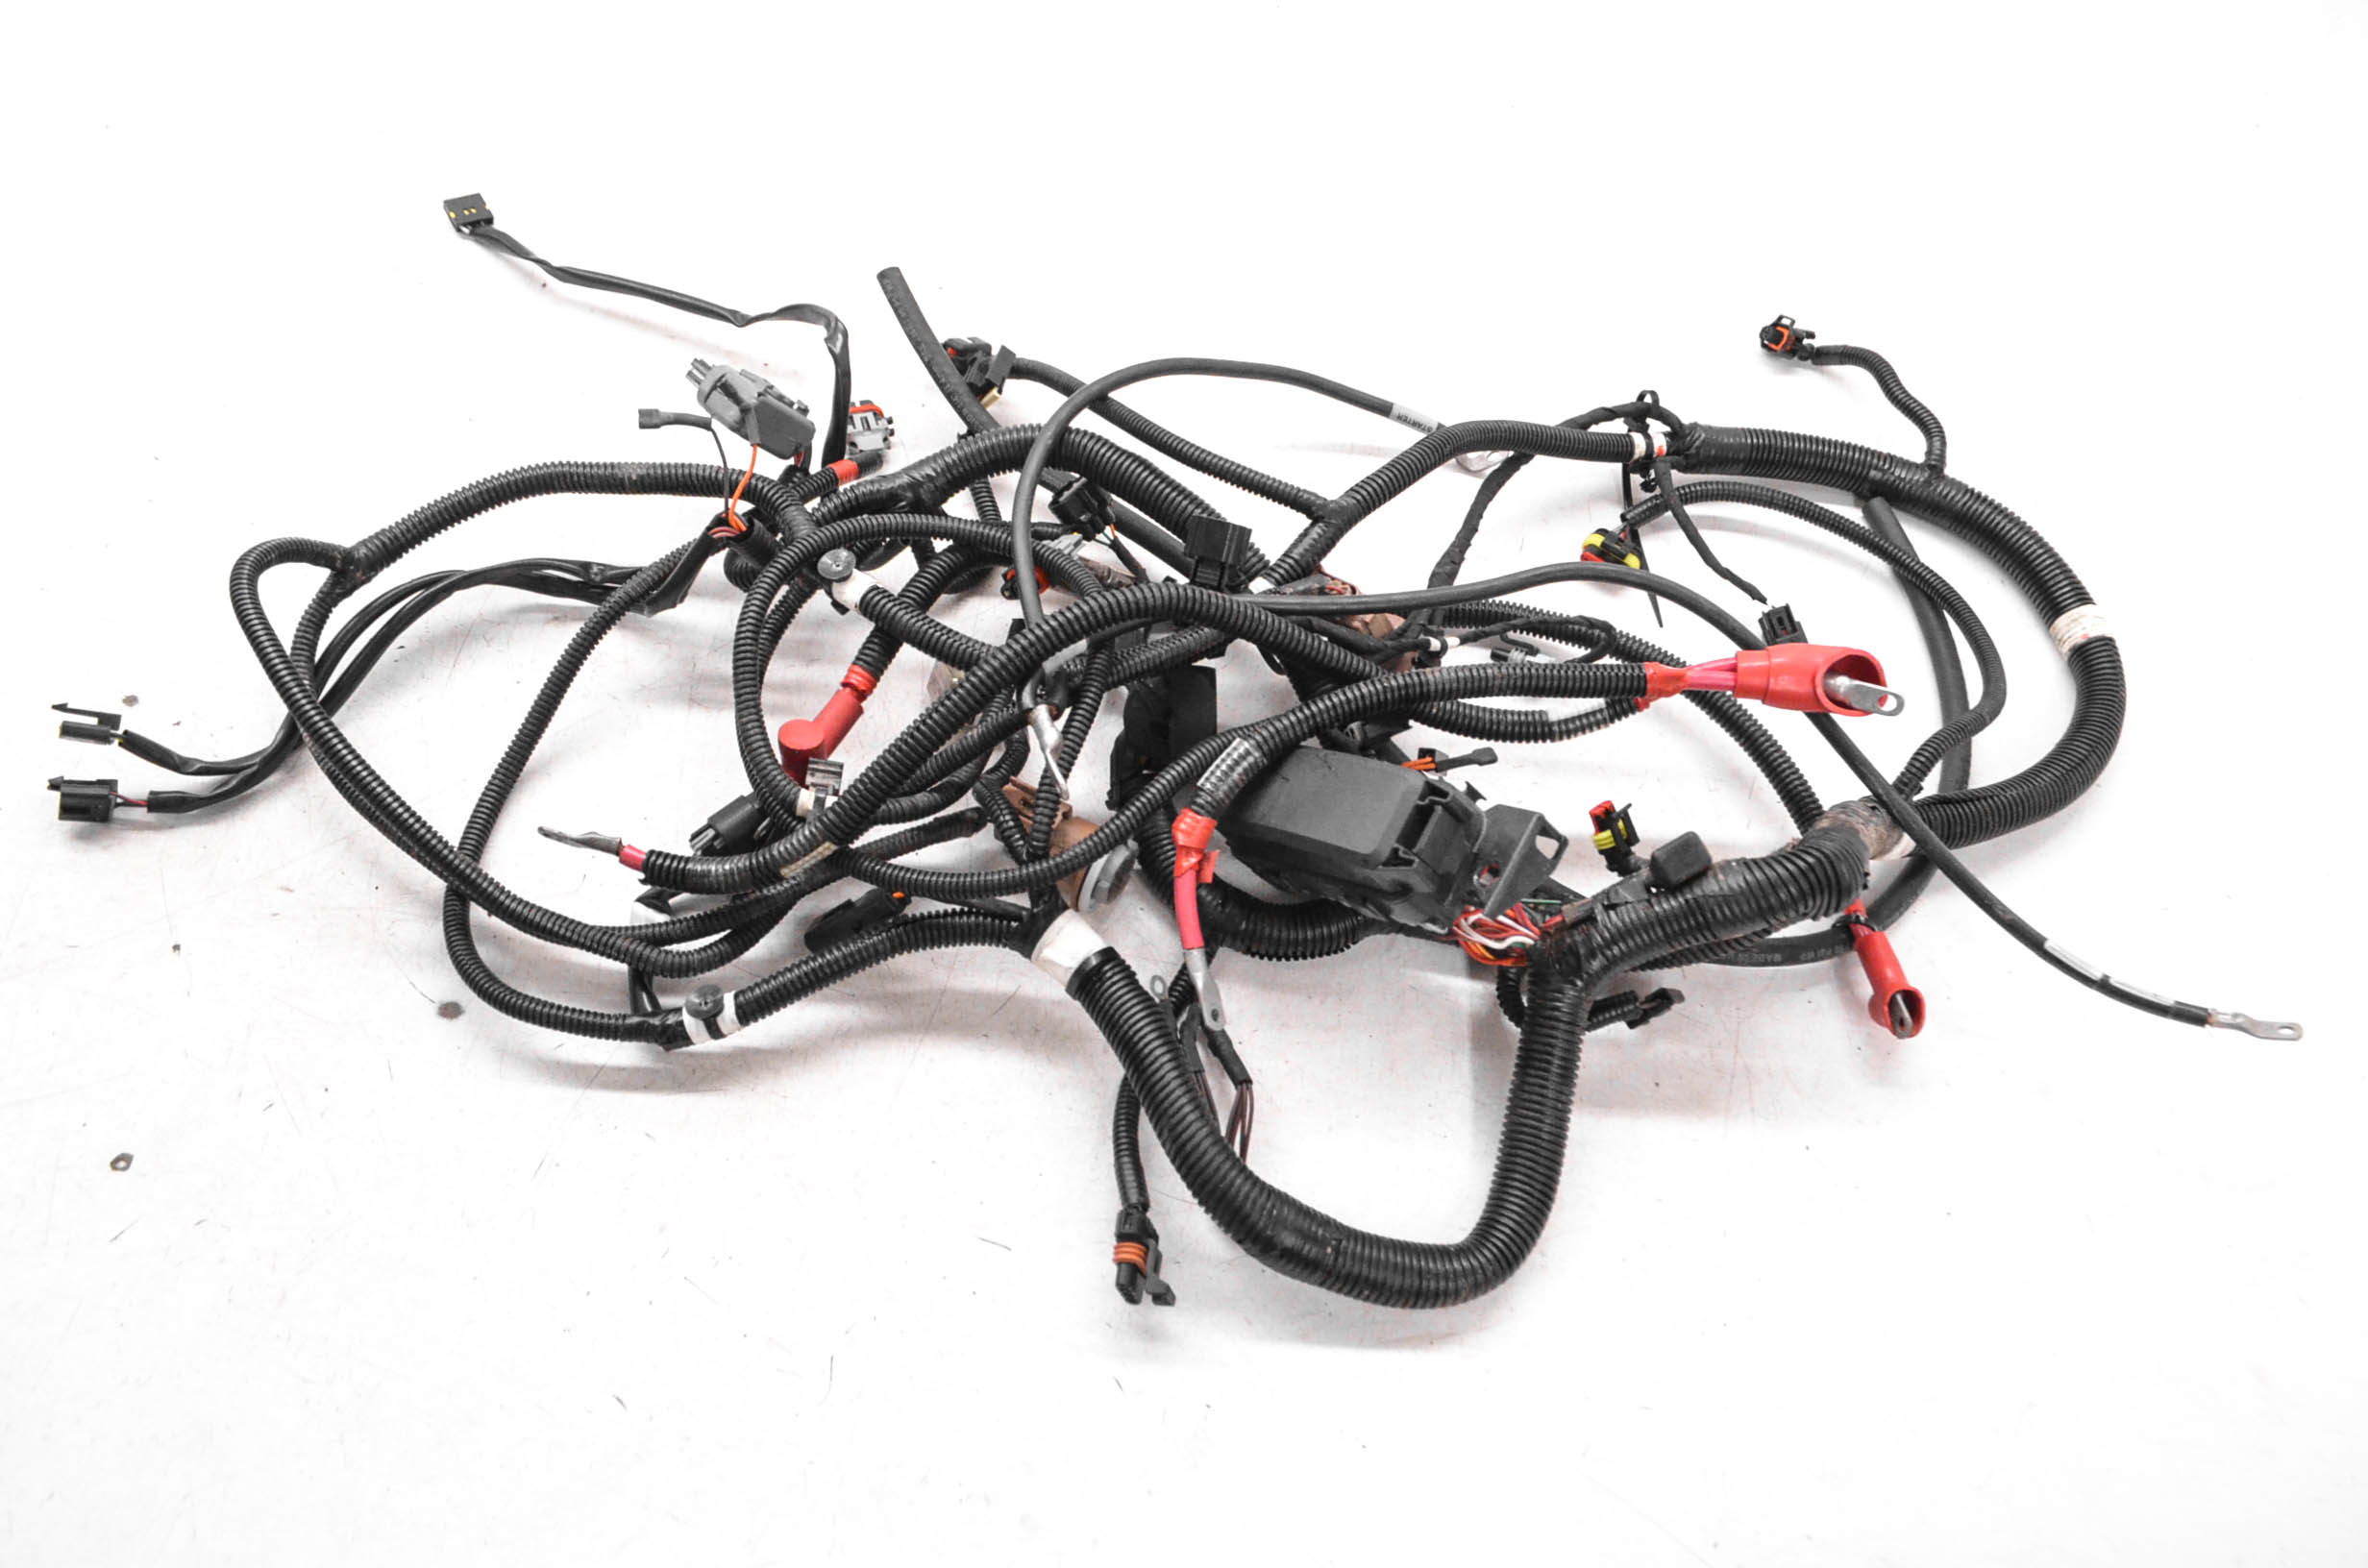 14 Polaris Sportsman 570 4x4 Wire Harness Electrical